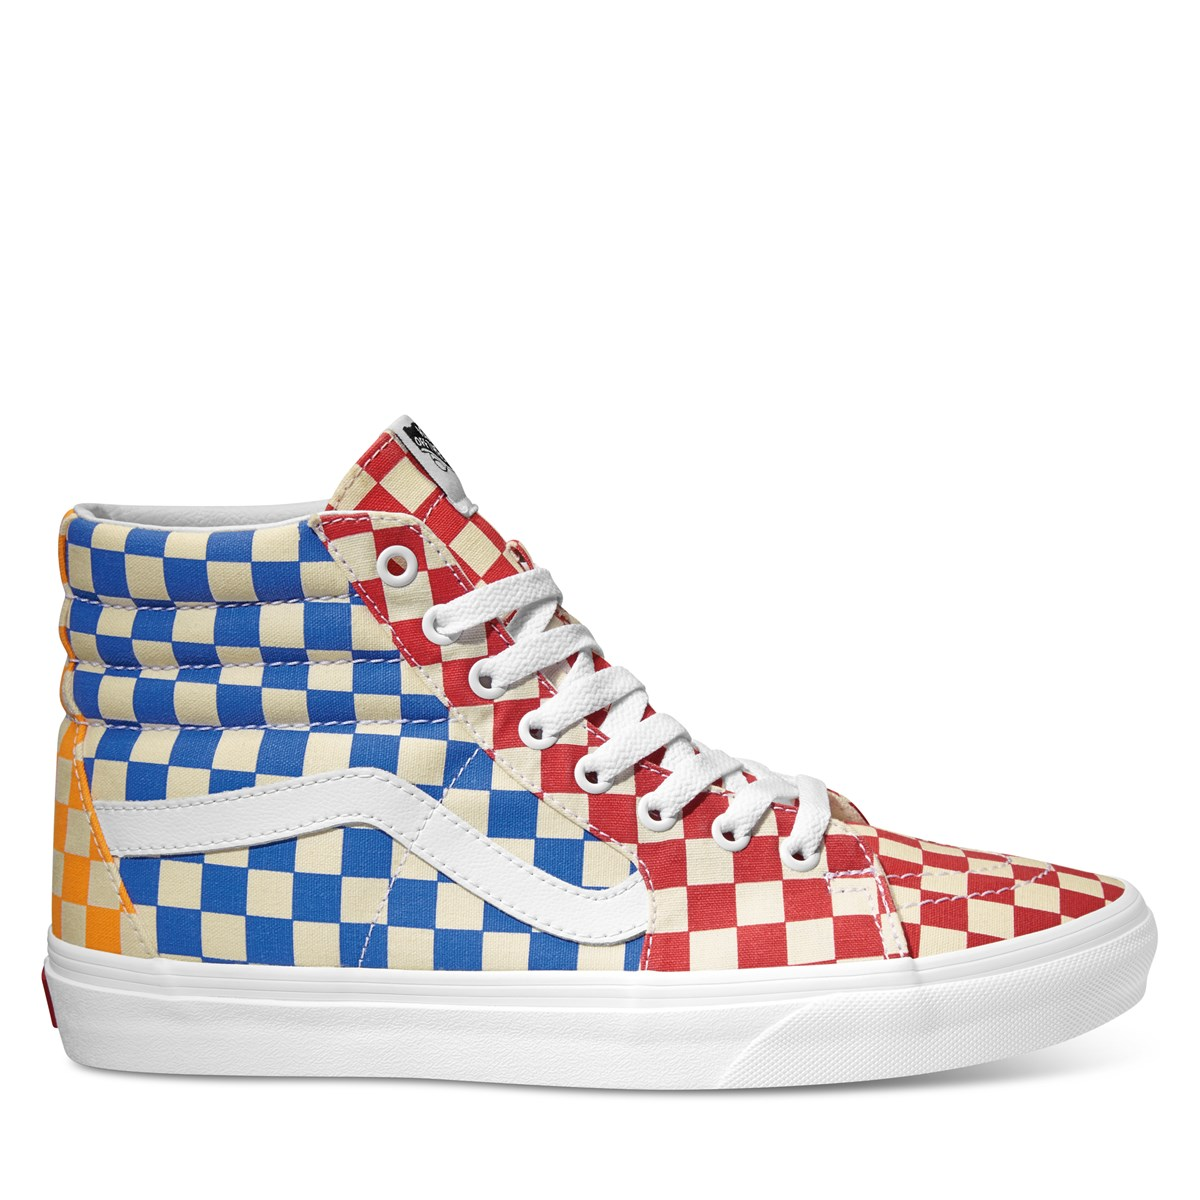 65552f1ed241 Men s Sk8-Hi Checkerboard Sneaker in Red and Blue